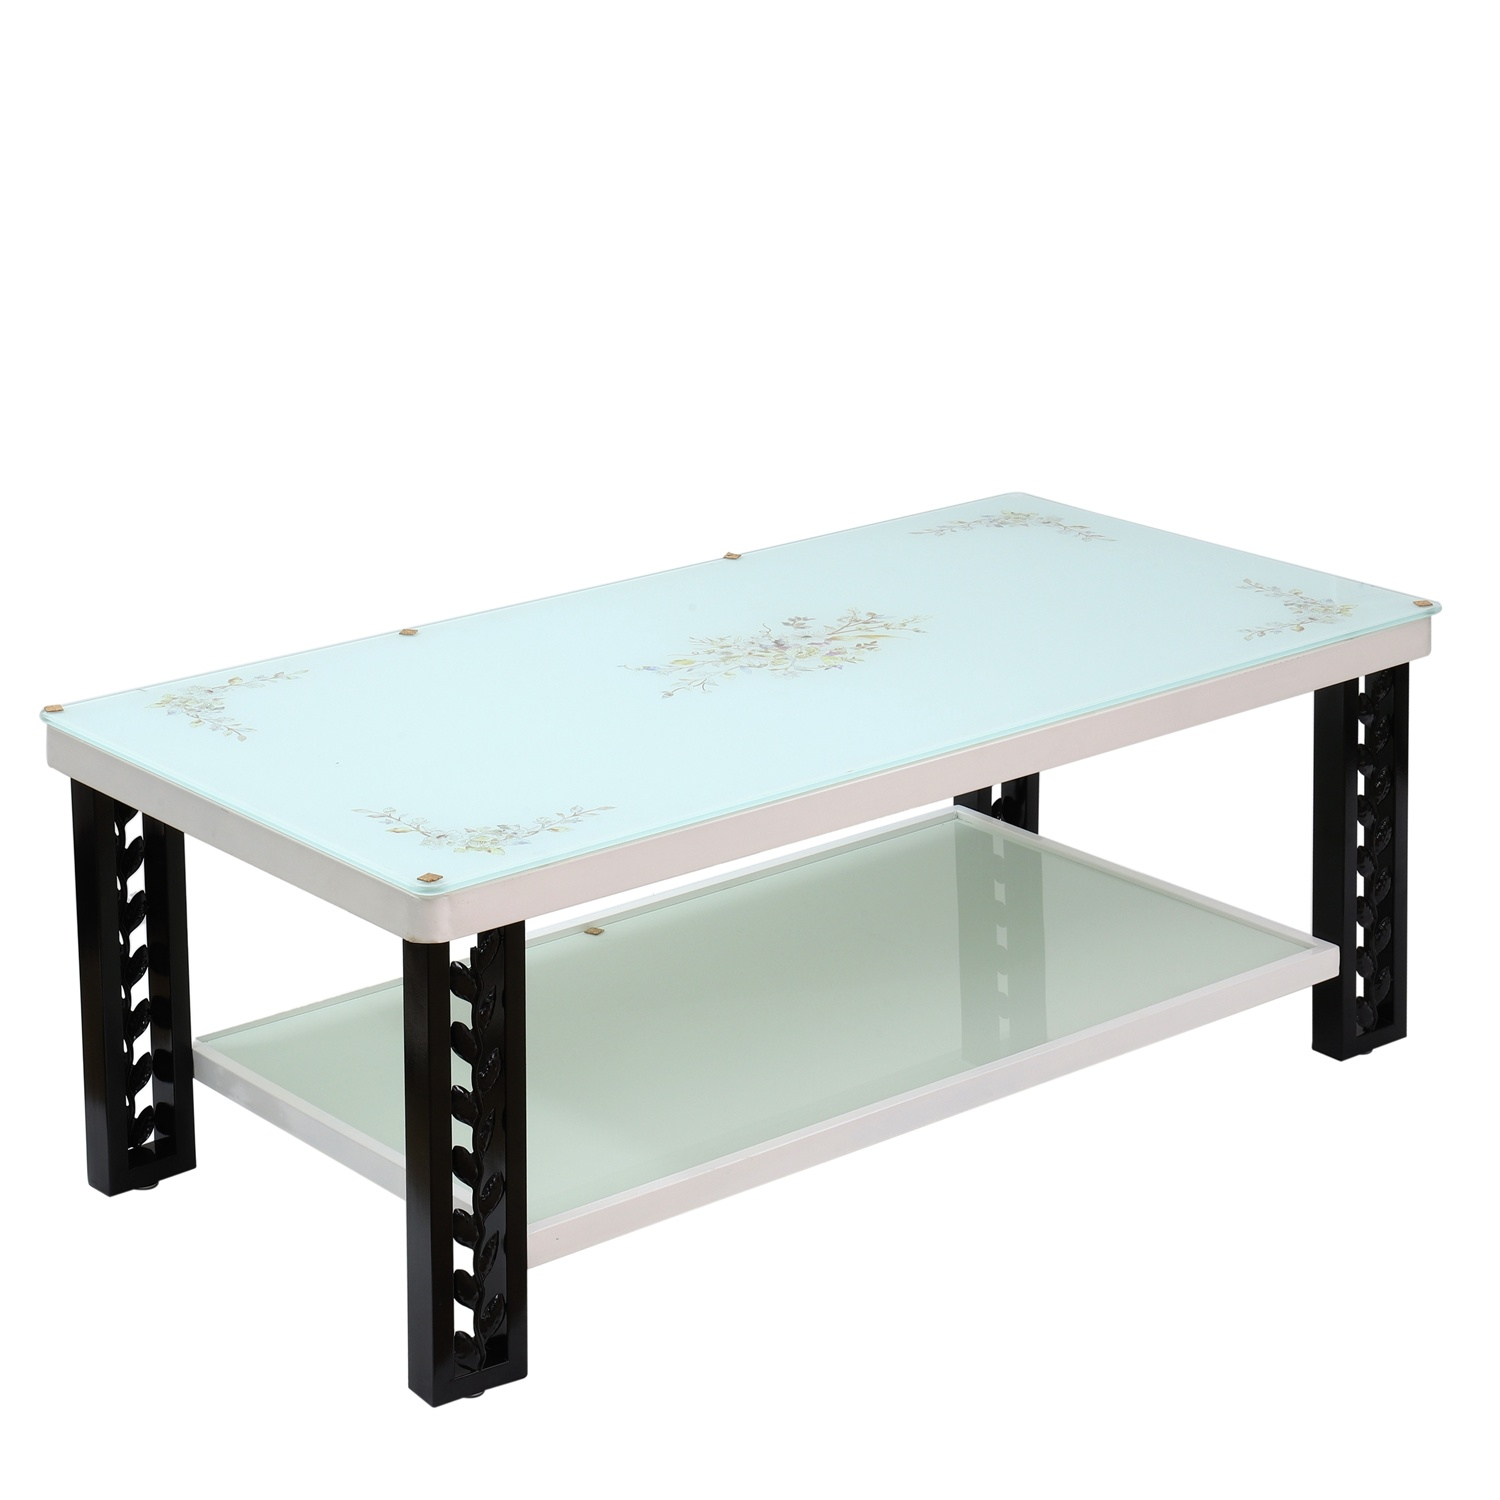 China tempered glass coffee table aluminum leg new design brushed finish modern furniture new design tea table 2019 center table china coffee table